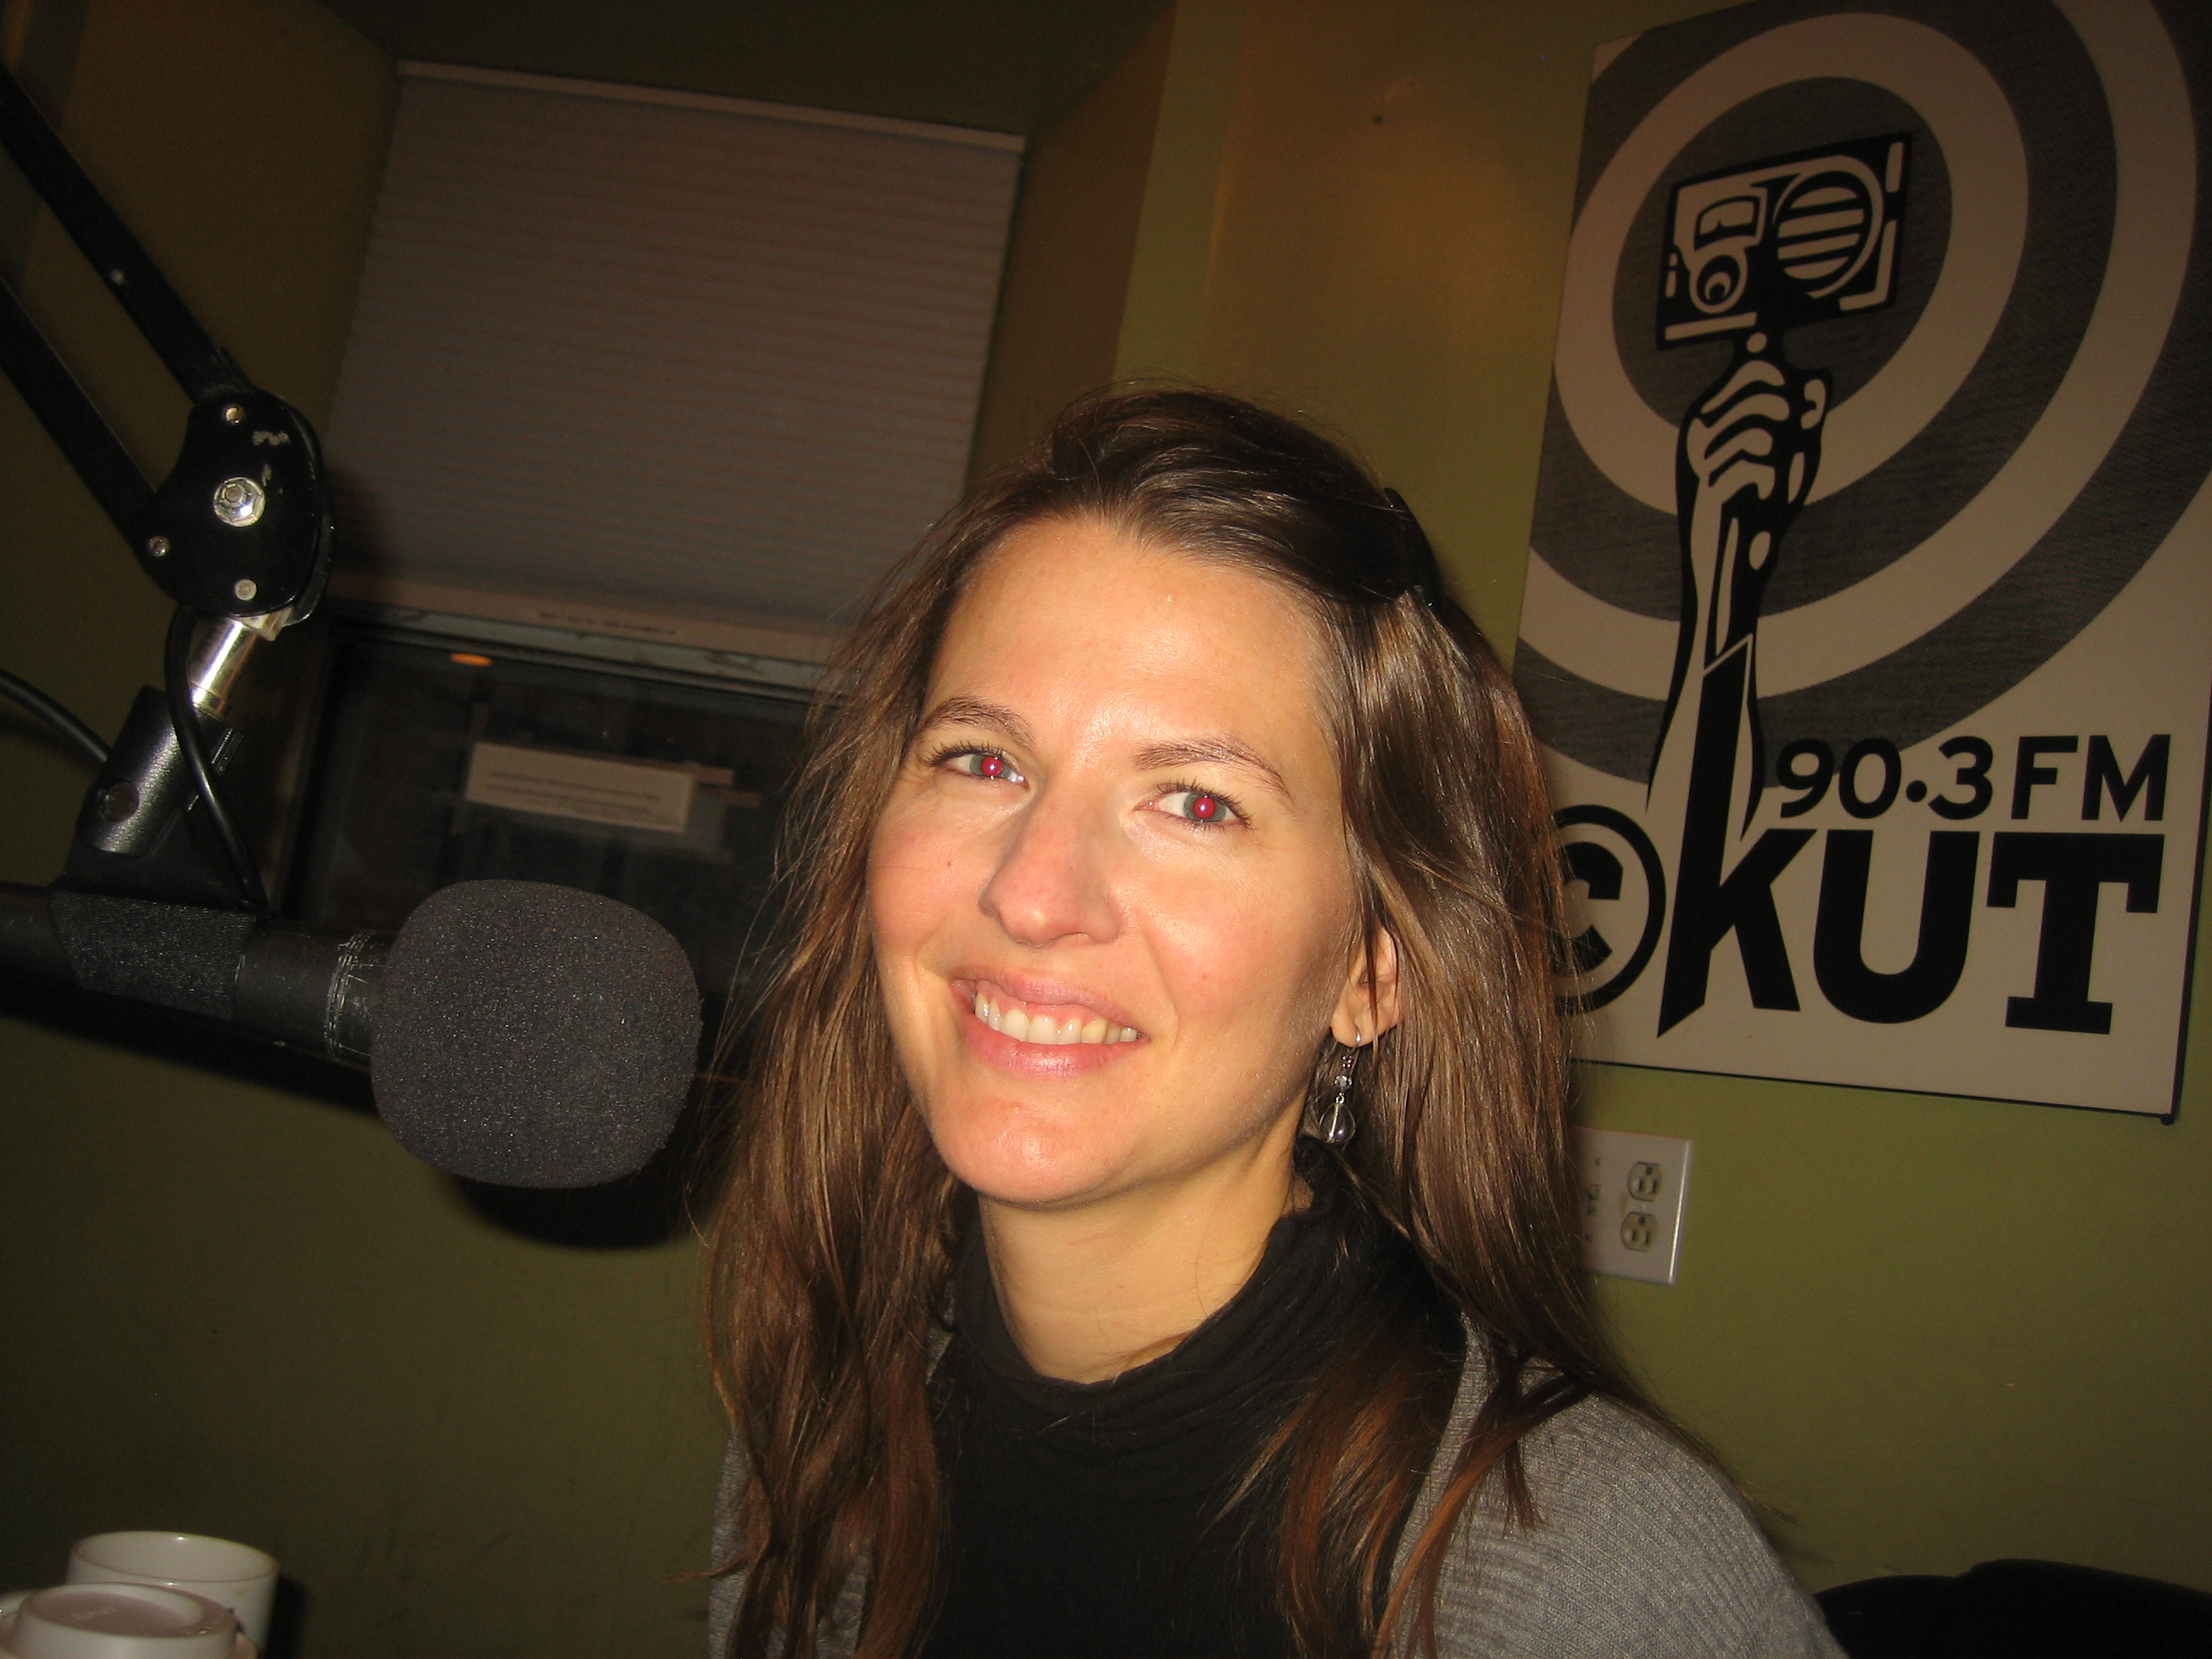 jennifer-roberge-on-ckut.jpg